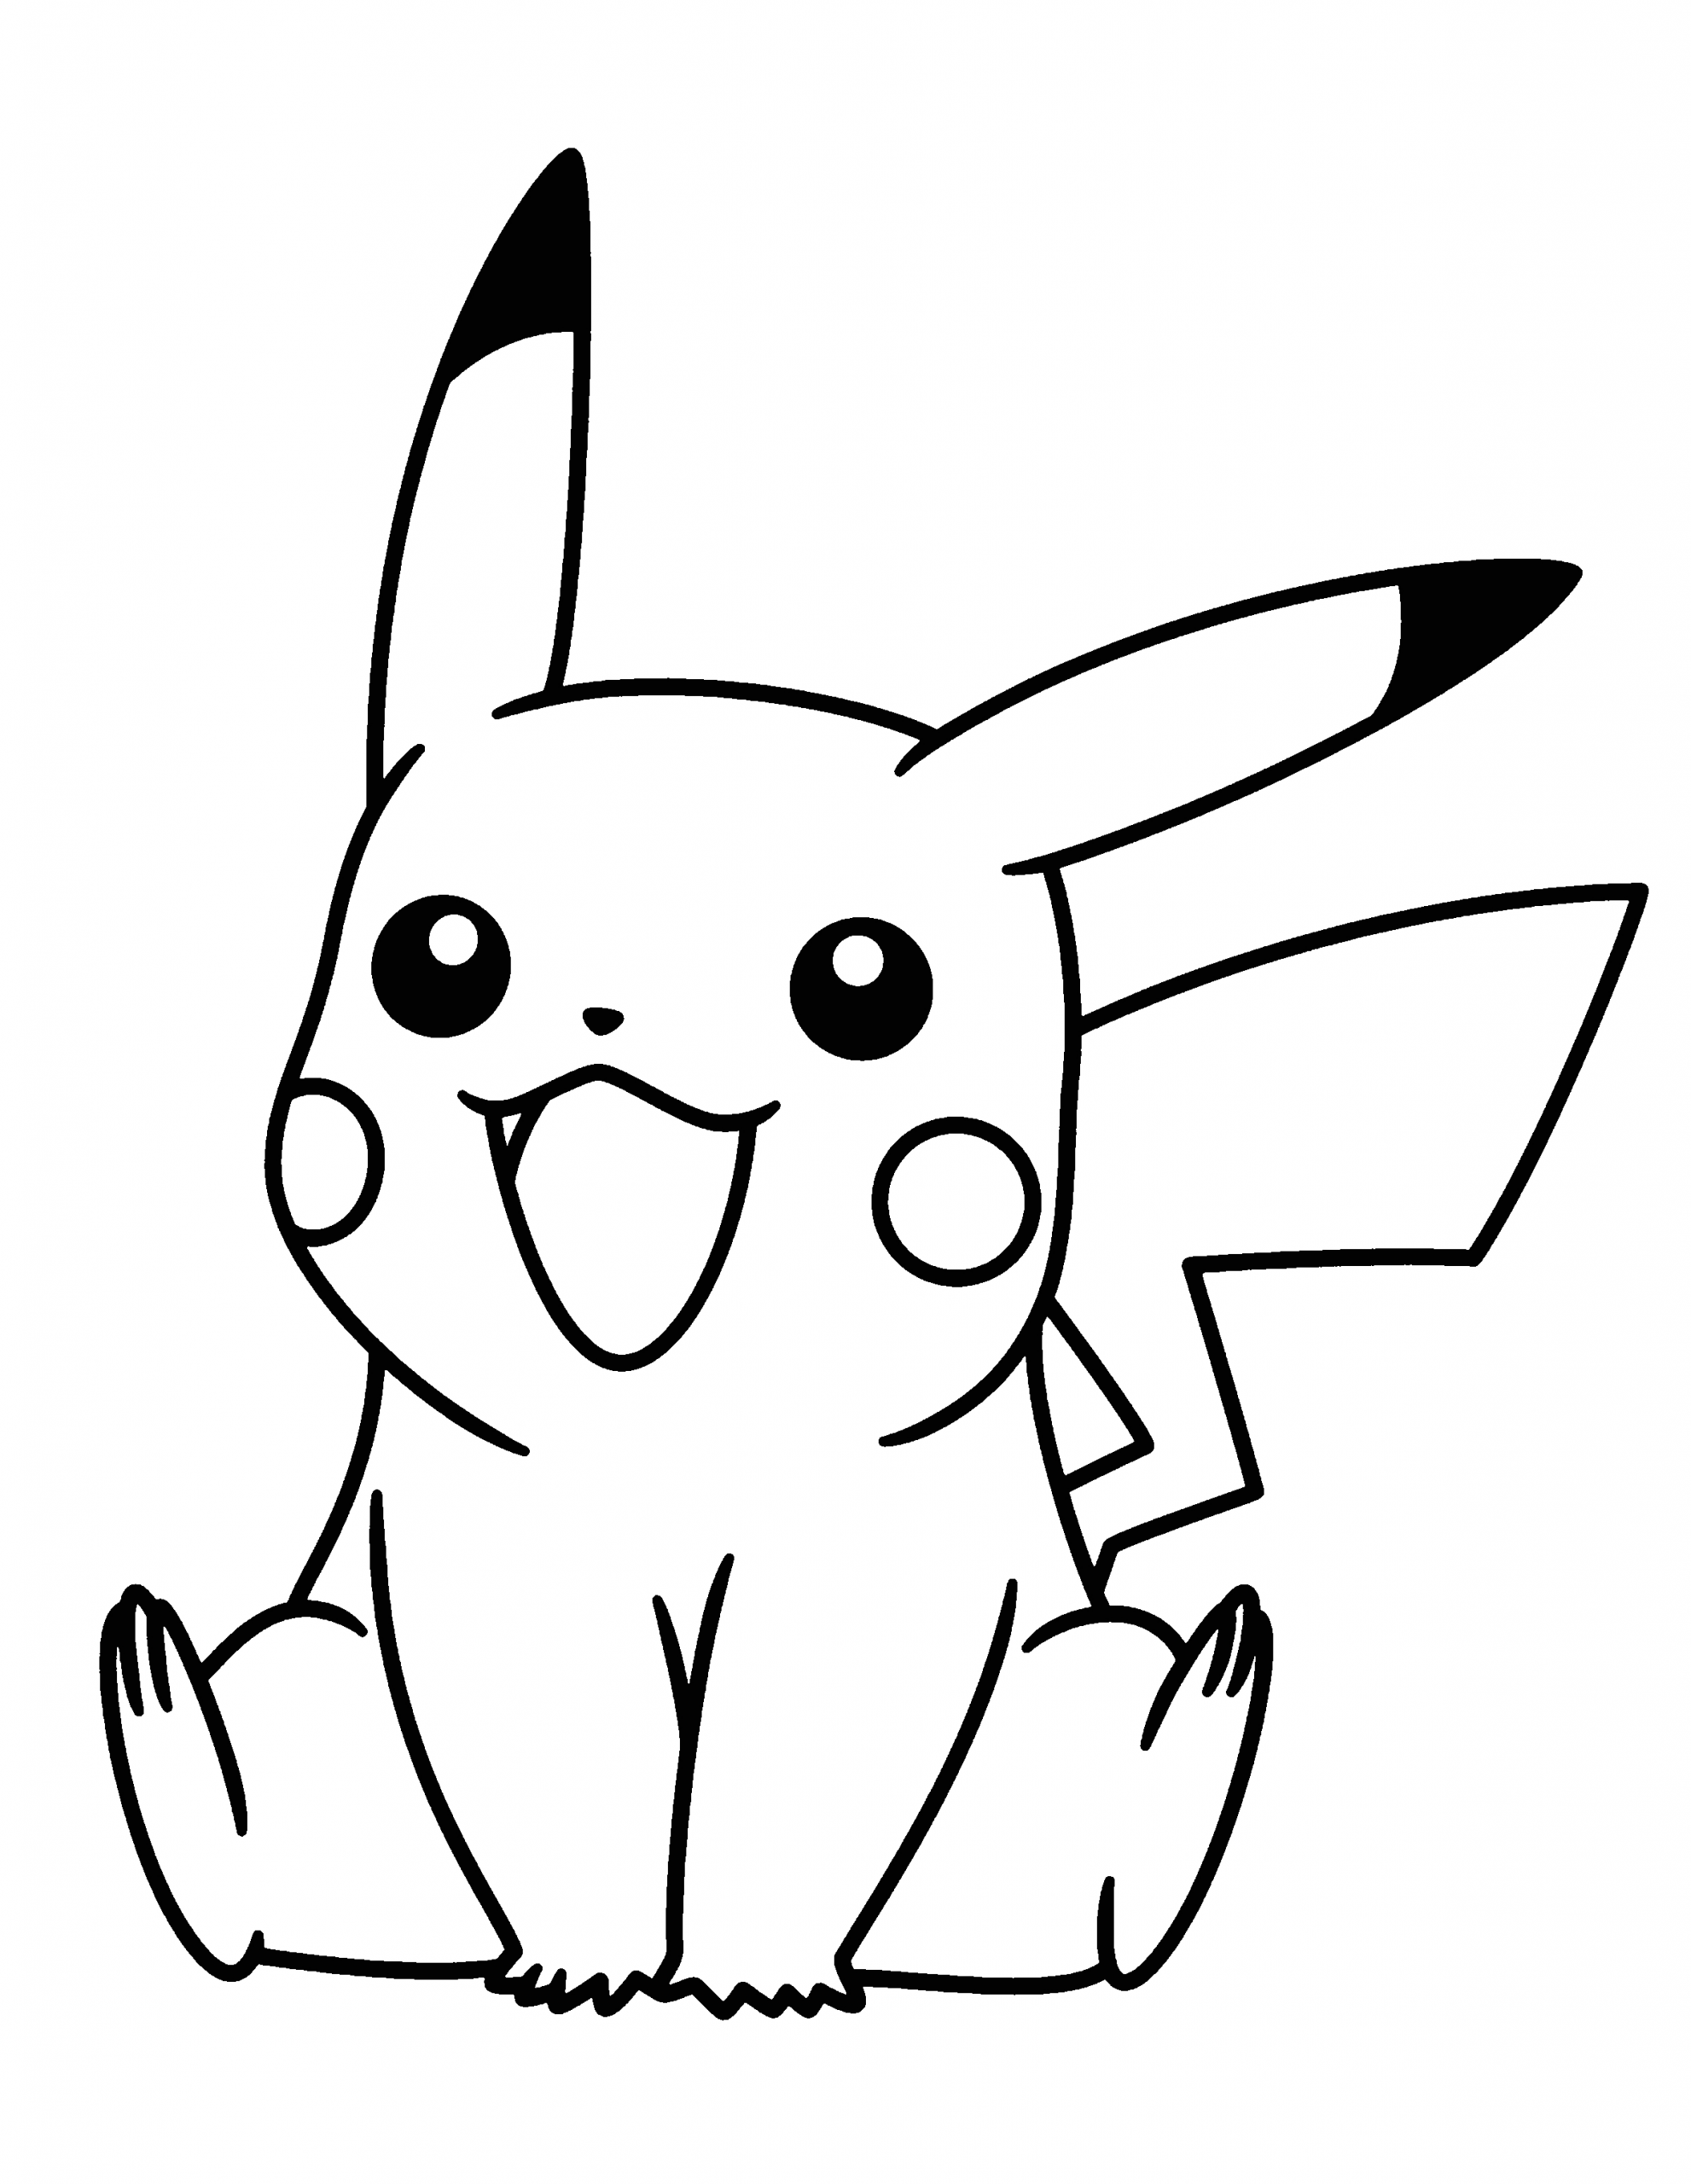 Pokemon Characters Black and White Coloring Pages Pokemon Characters Black and White Coloring Pages